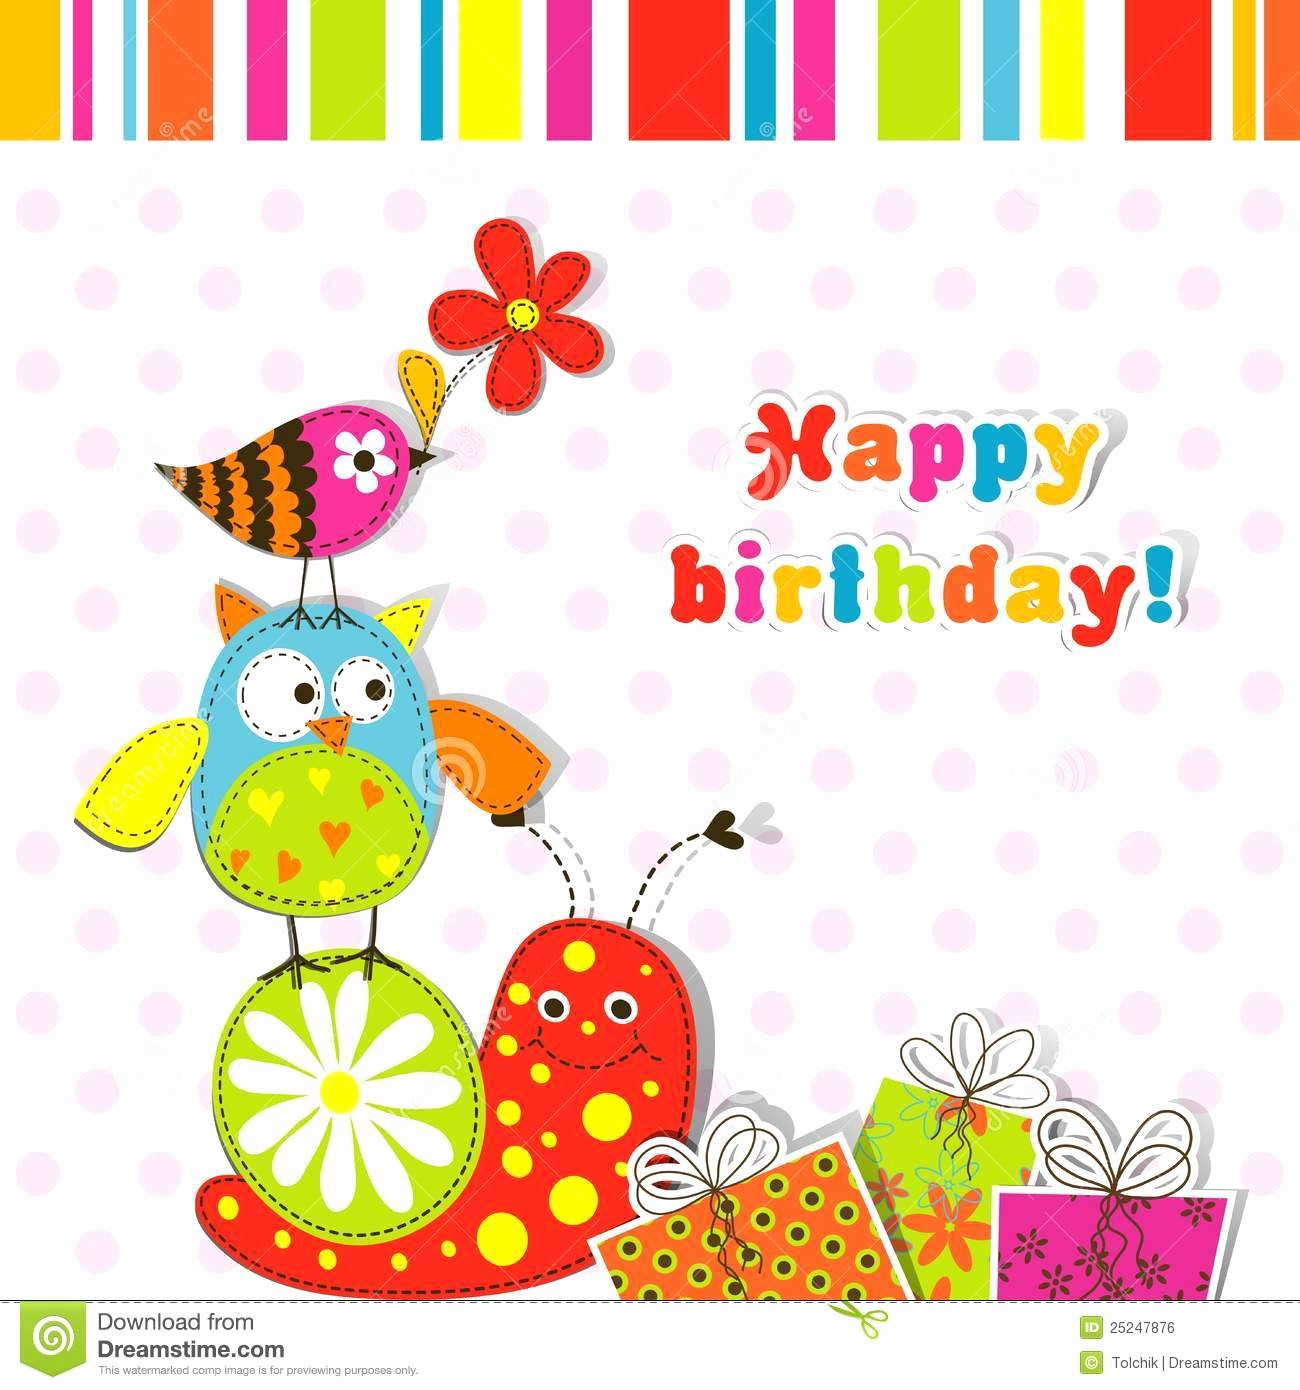 Greeting Cards Templates Free Downloads Unique Birthday Card Template